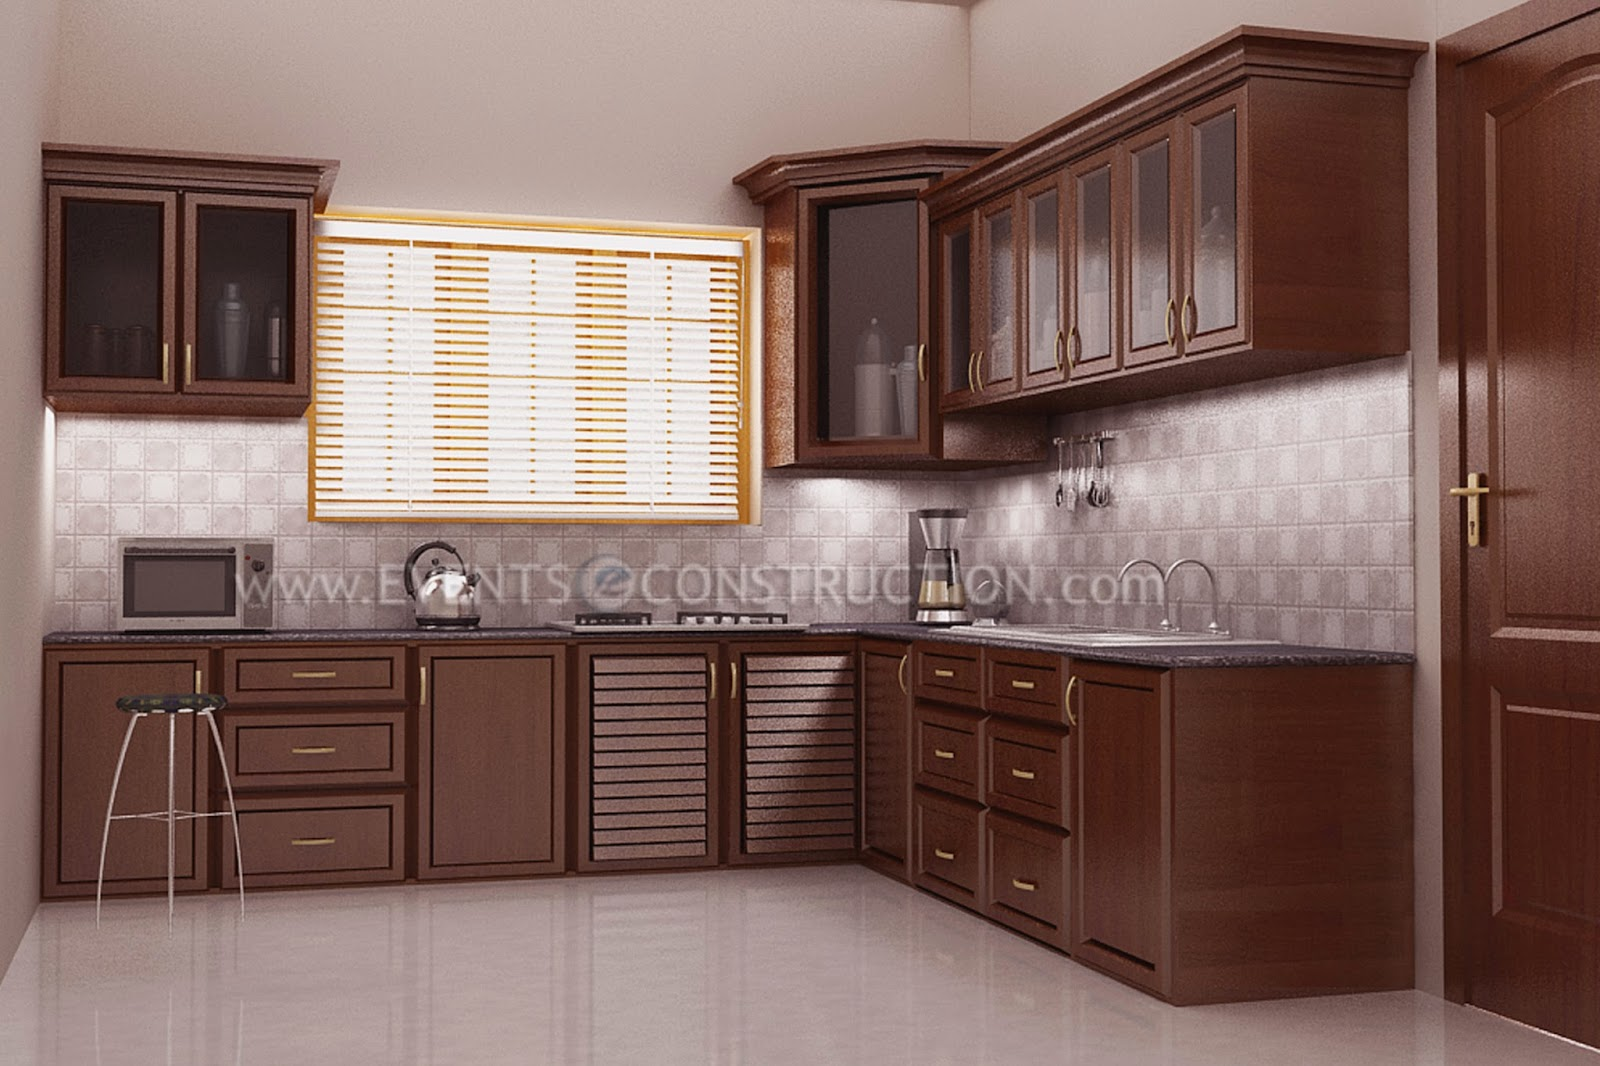 Evens construction pvt ltd kitchen design with wooden for Model kitchen images